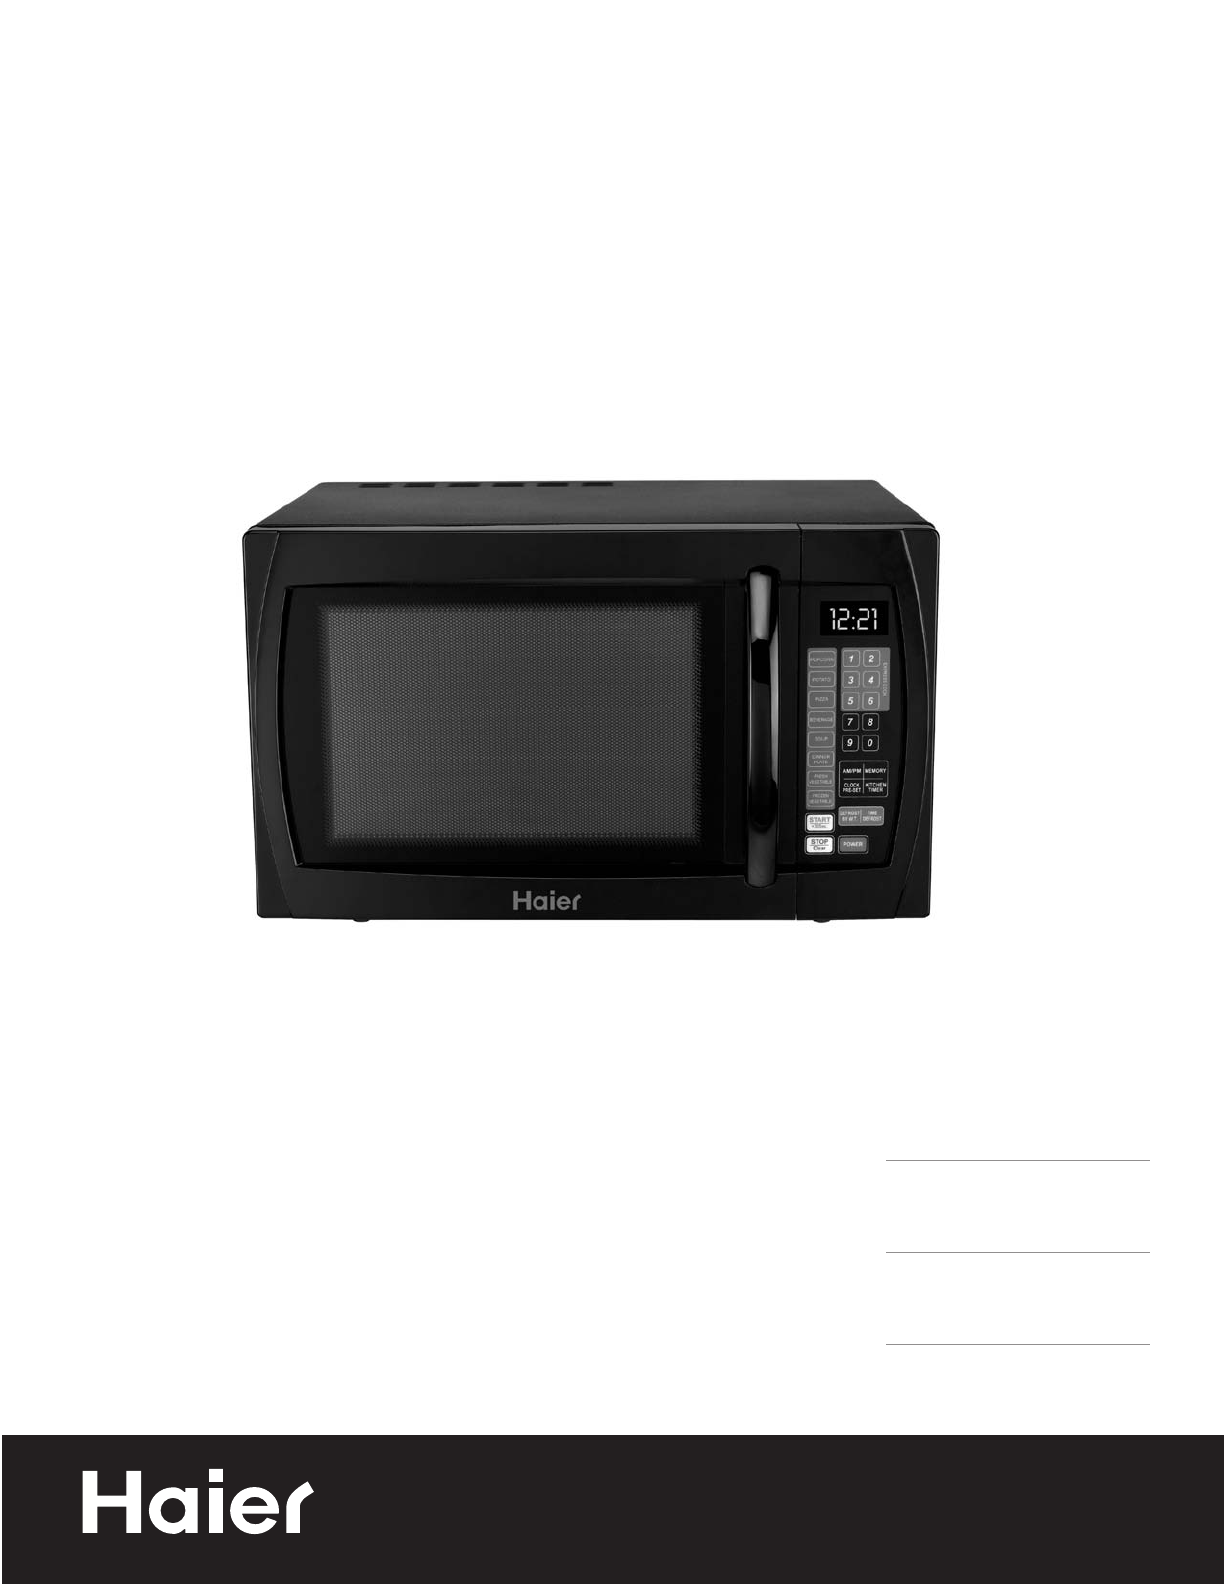 haier microwave oven mwm11100tw user guide manualsonline com rh kitchen manualsonline com haier thermocool microwave manual haier thermocool microwave manual